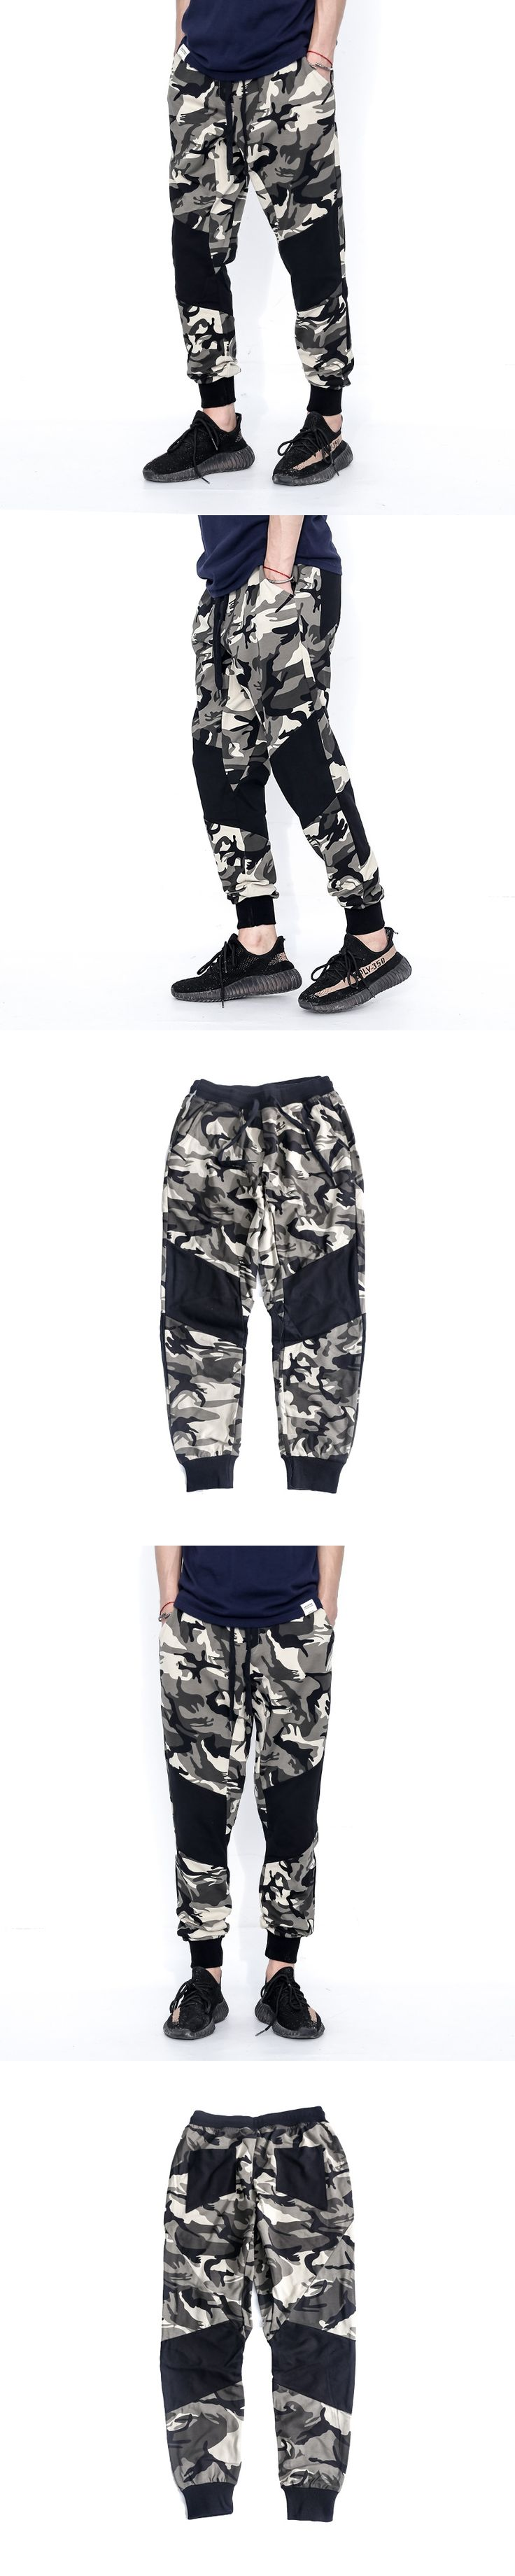 Casual loose pencil pants Brand Men Clothing Camouflage Cargo Trouser Male Casual Man Pantalon Homme Military Pants 7978